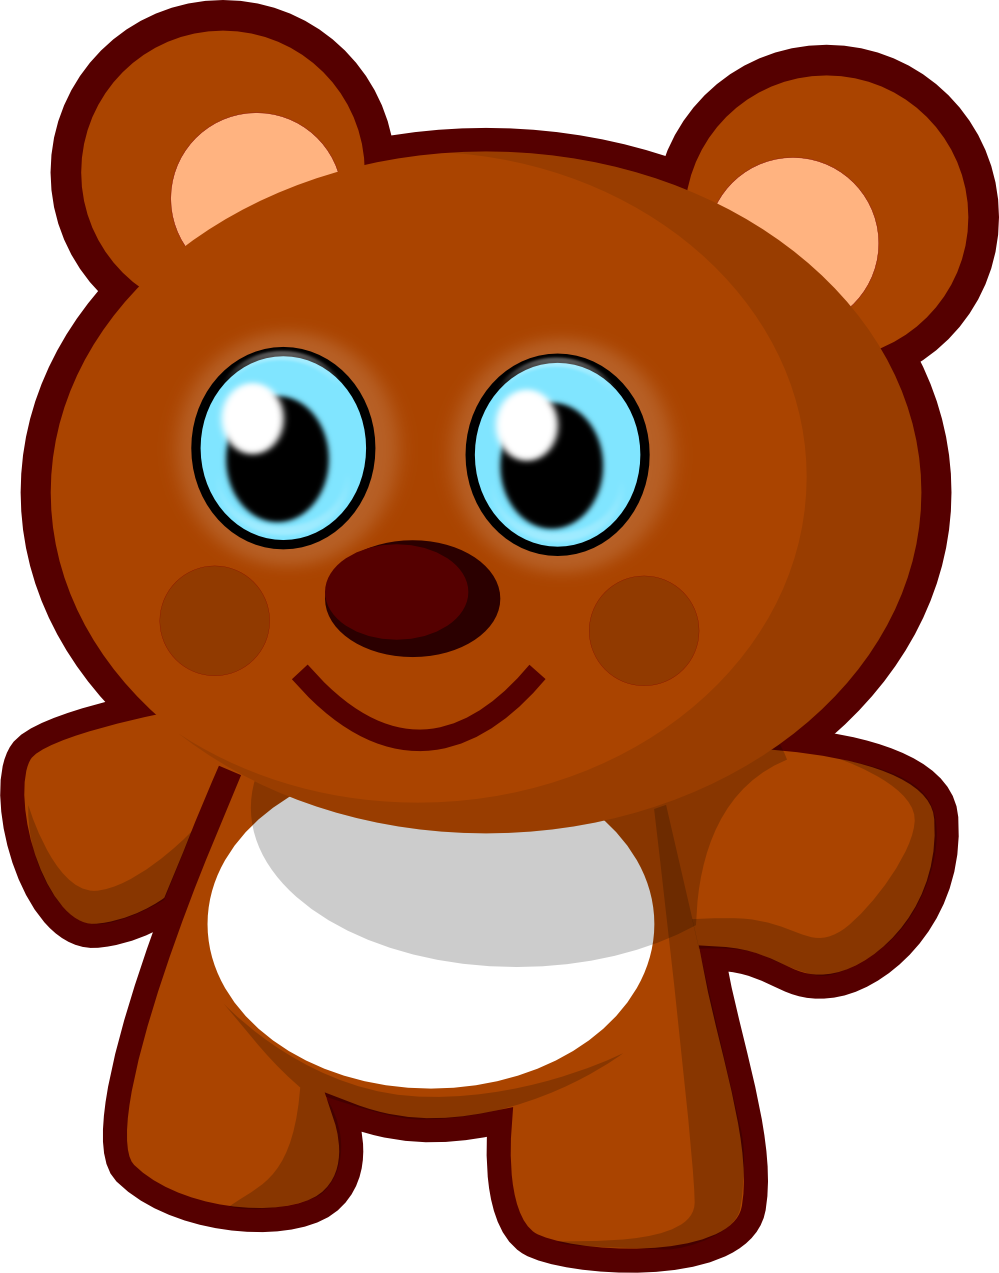 graphic transparent library Scary at getdrawings com. Bear ears clipart